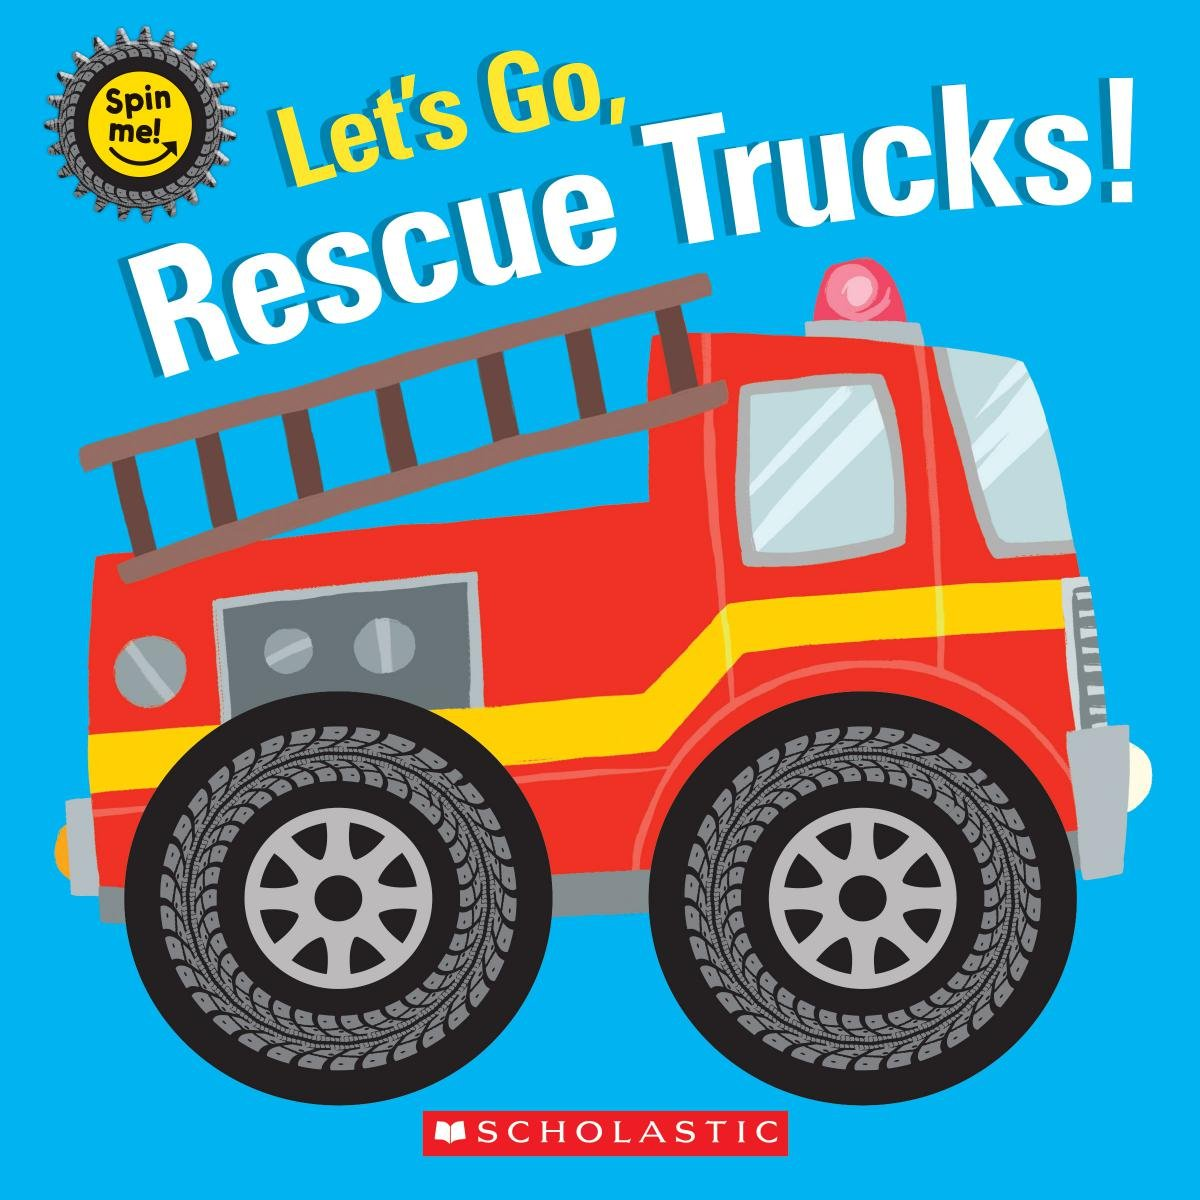 Lets go, rescue trucks